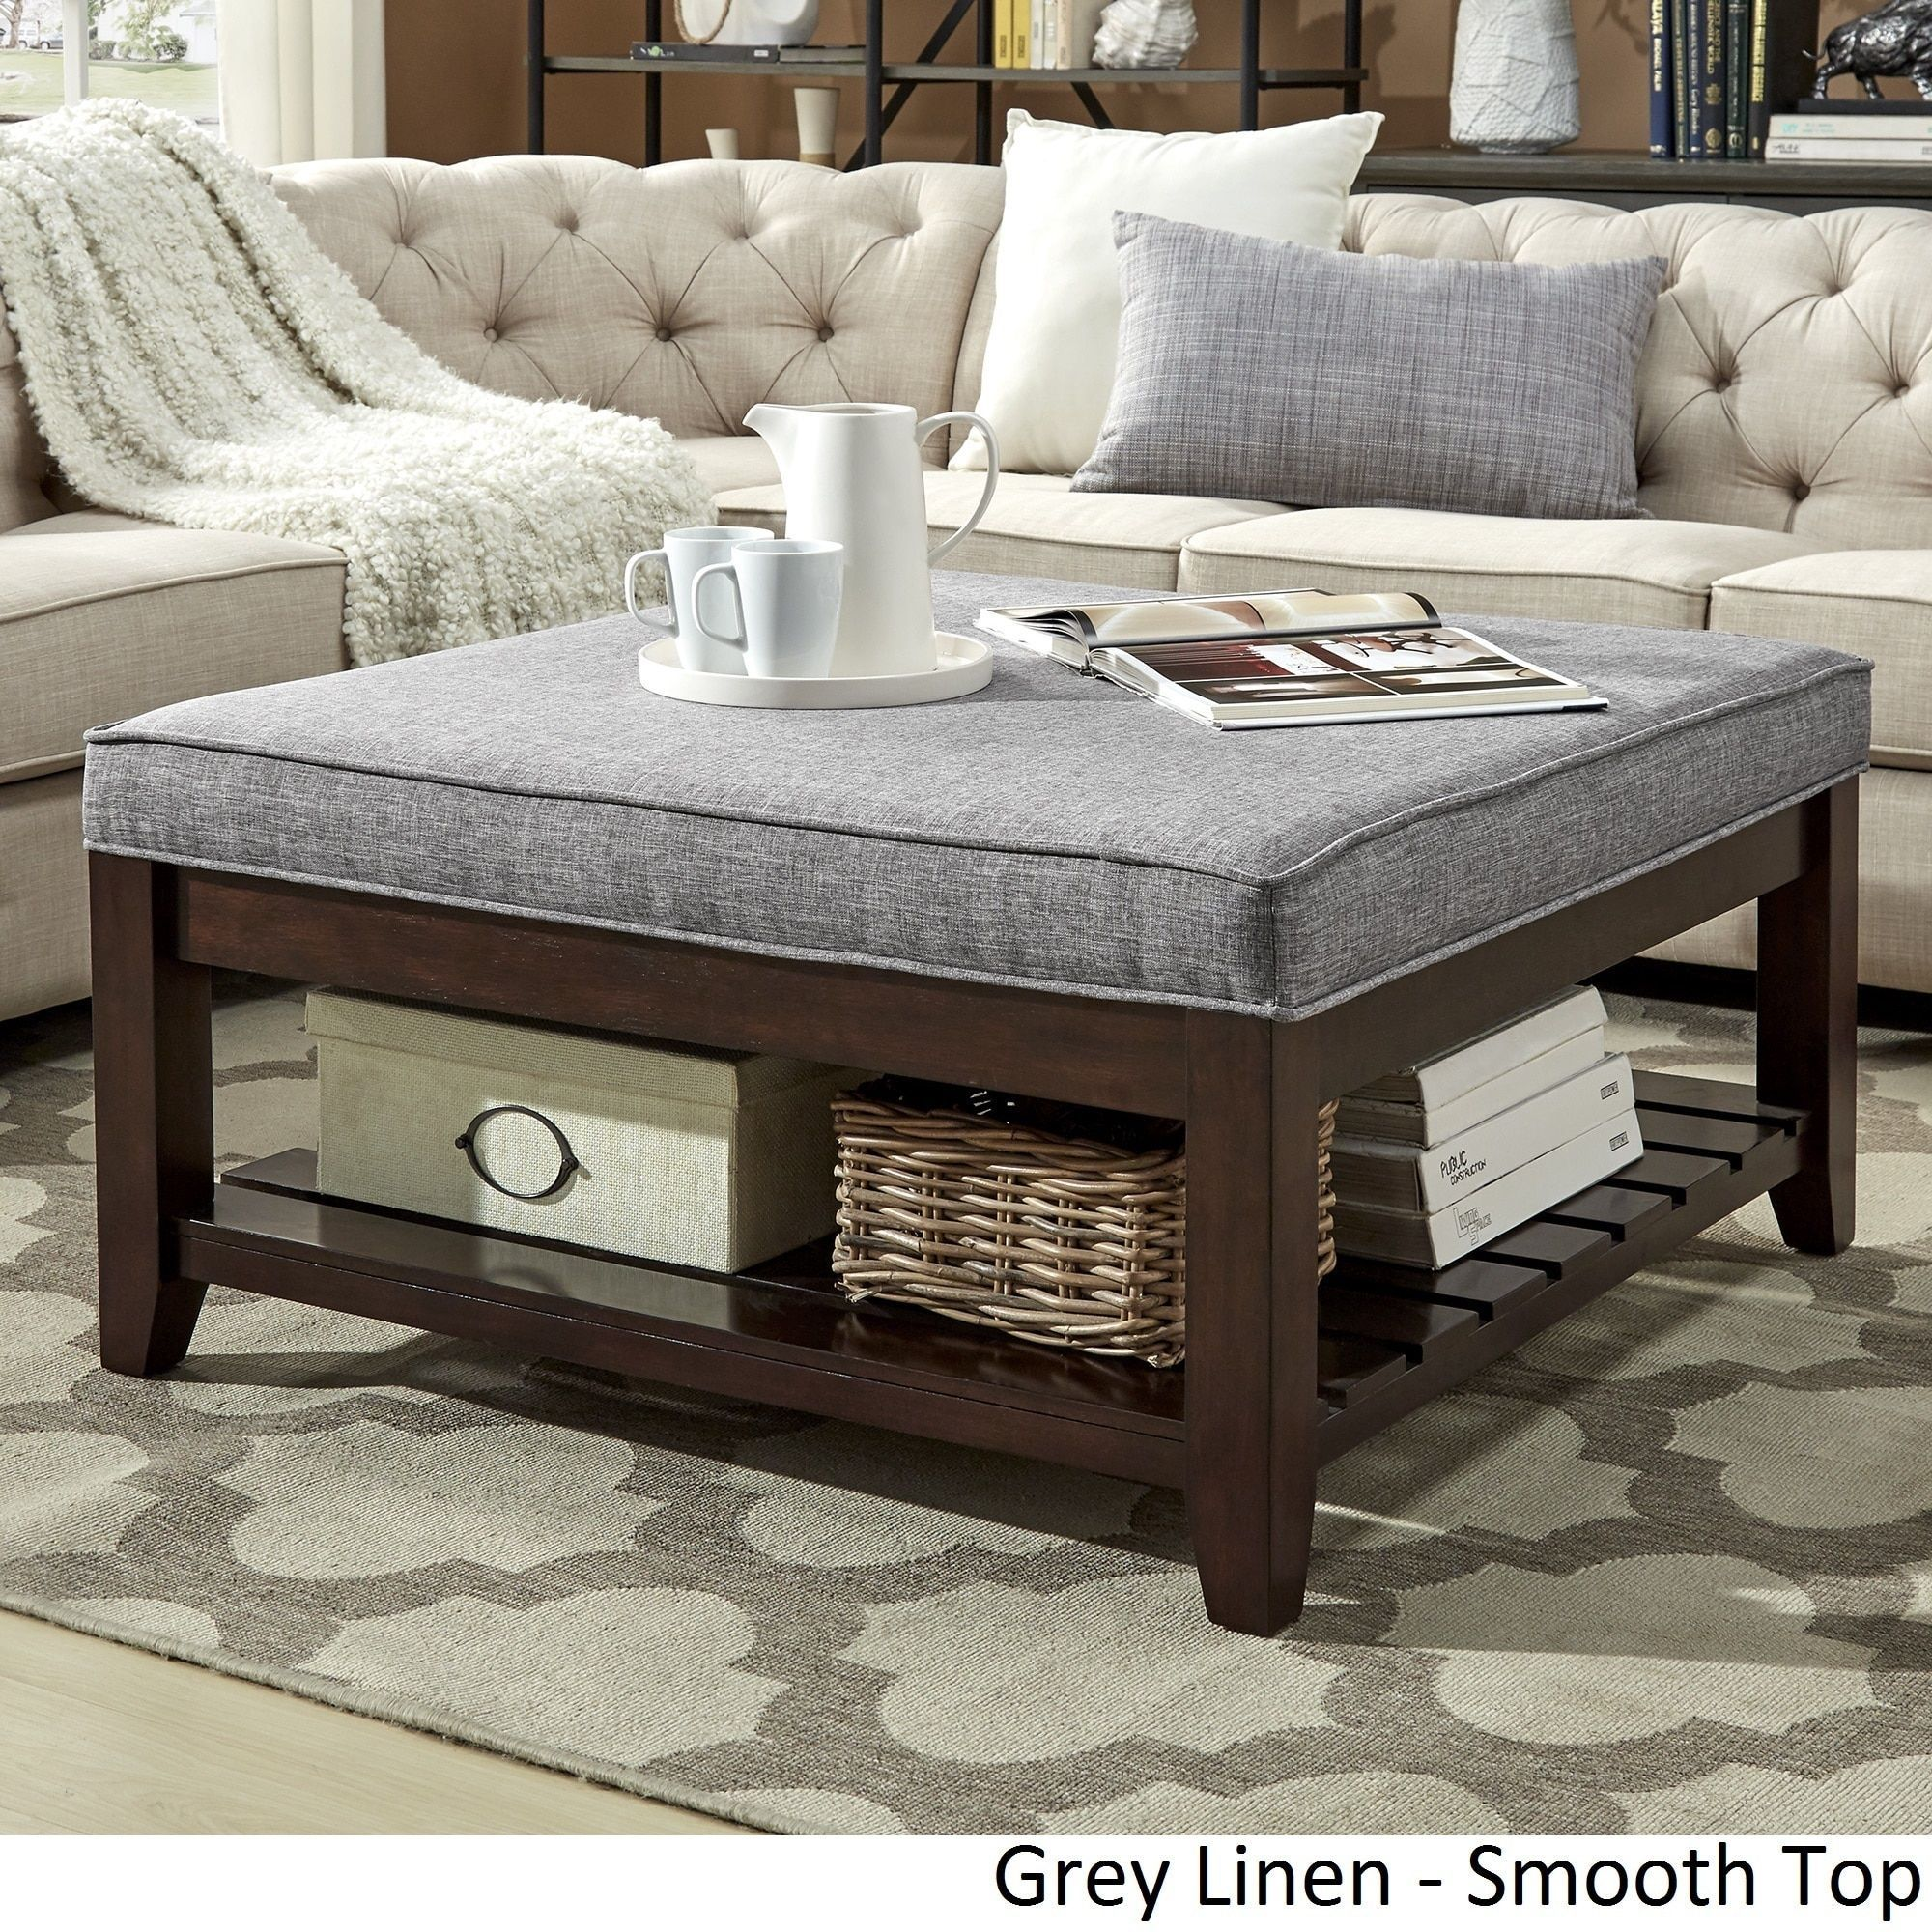 Coffee Table Footrest Storage: Lennon Espresso Planked Storage Ottoman Coffee Table By